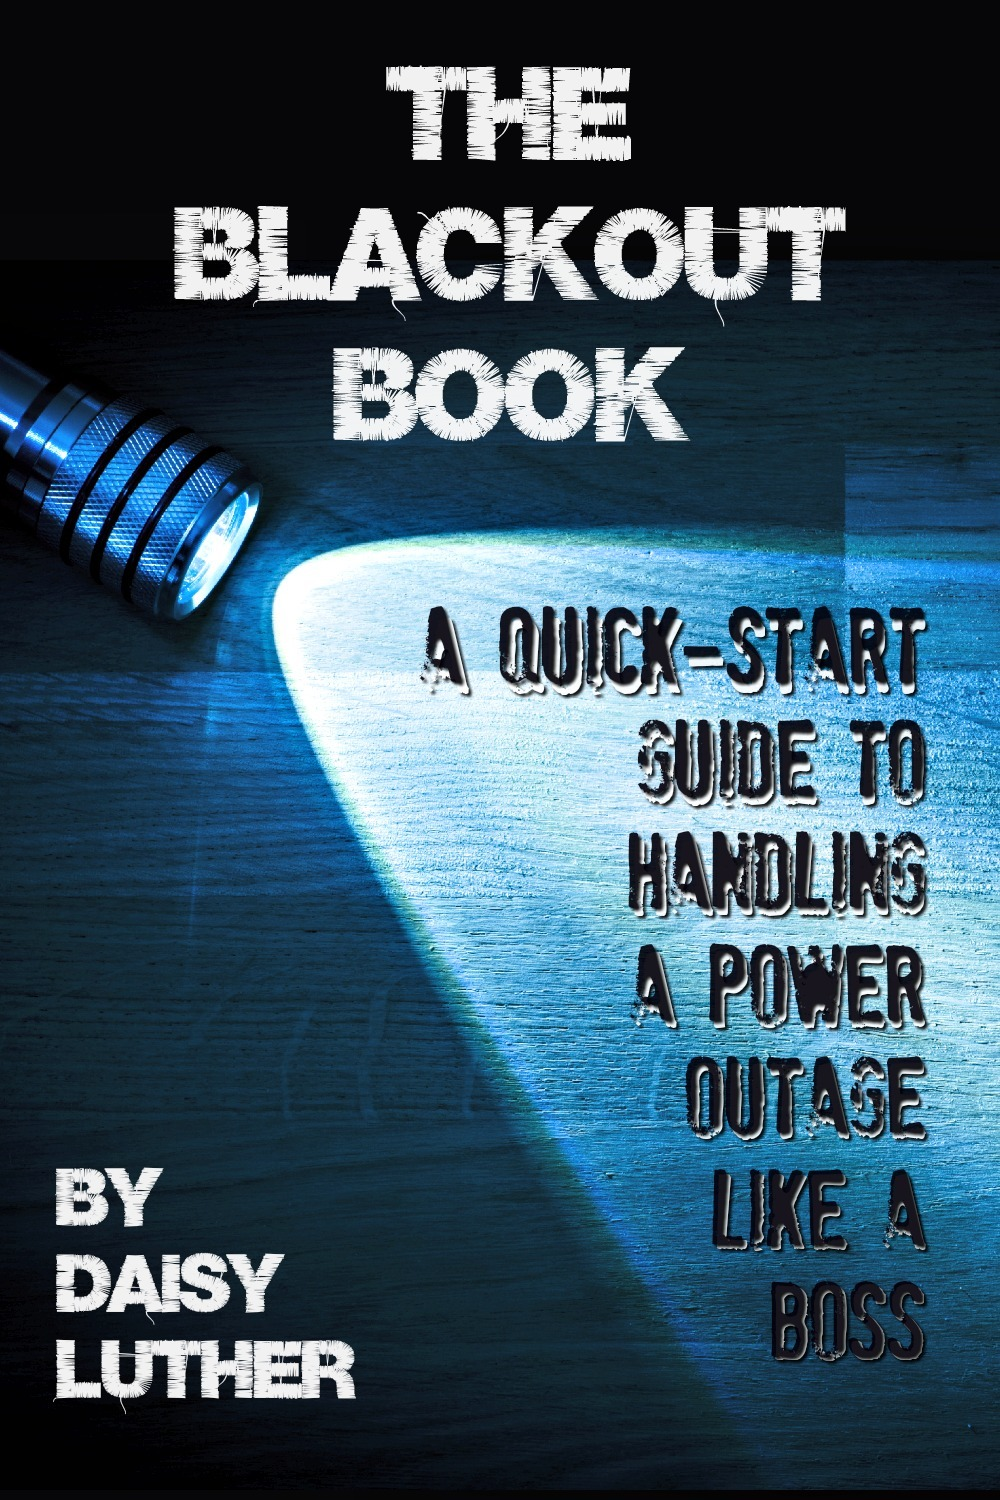 The Blackout Book is your quick-start guide to handling a power outage like a boss. It\'s written to be friendly and helpful to beginners and those with a bit more experience.